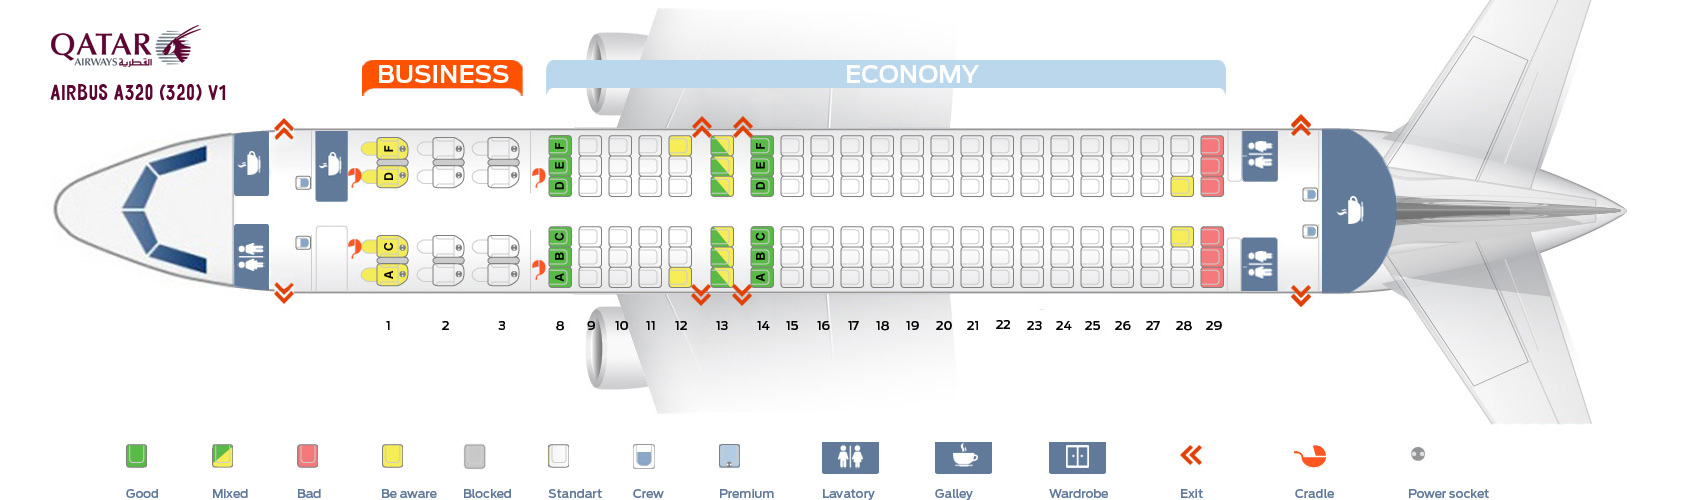 Seat Map And Seating Chart Airbus A320 200 Qatar Airways V1